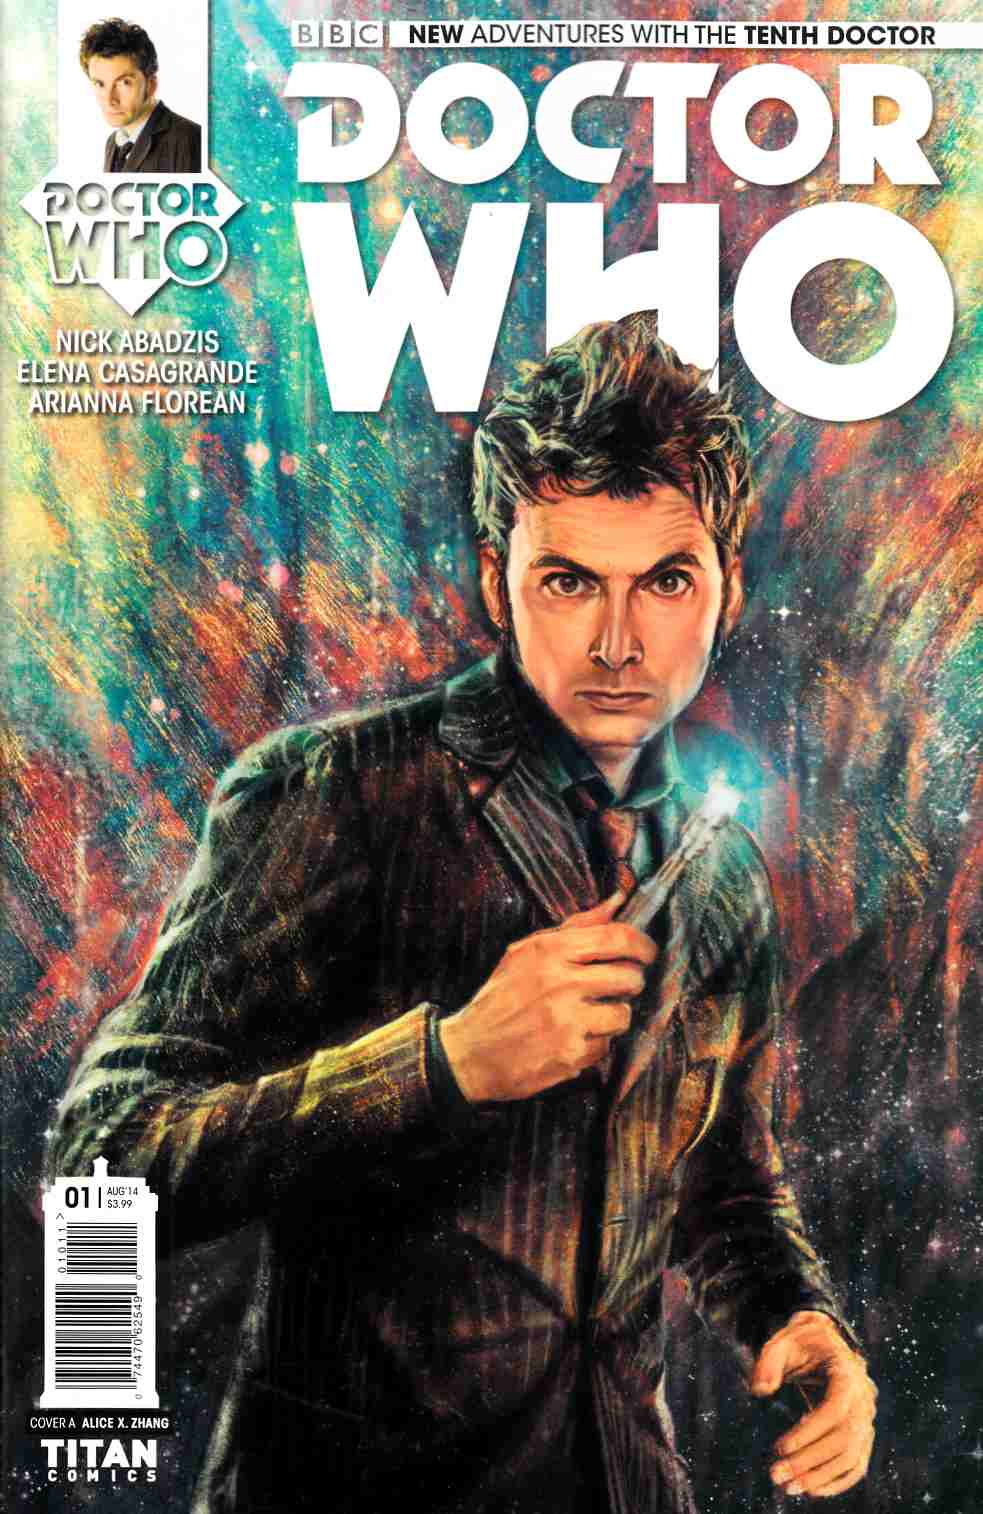 Doctor Who 10th Doctor #1 [Comic]